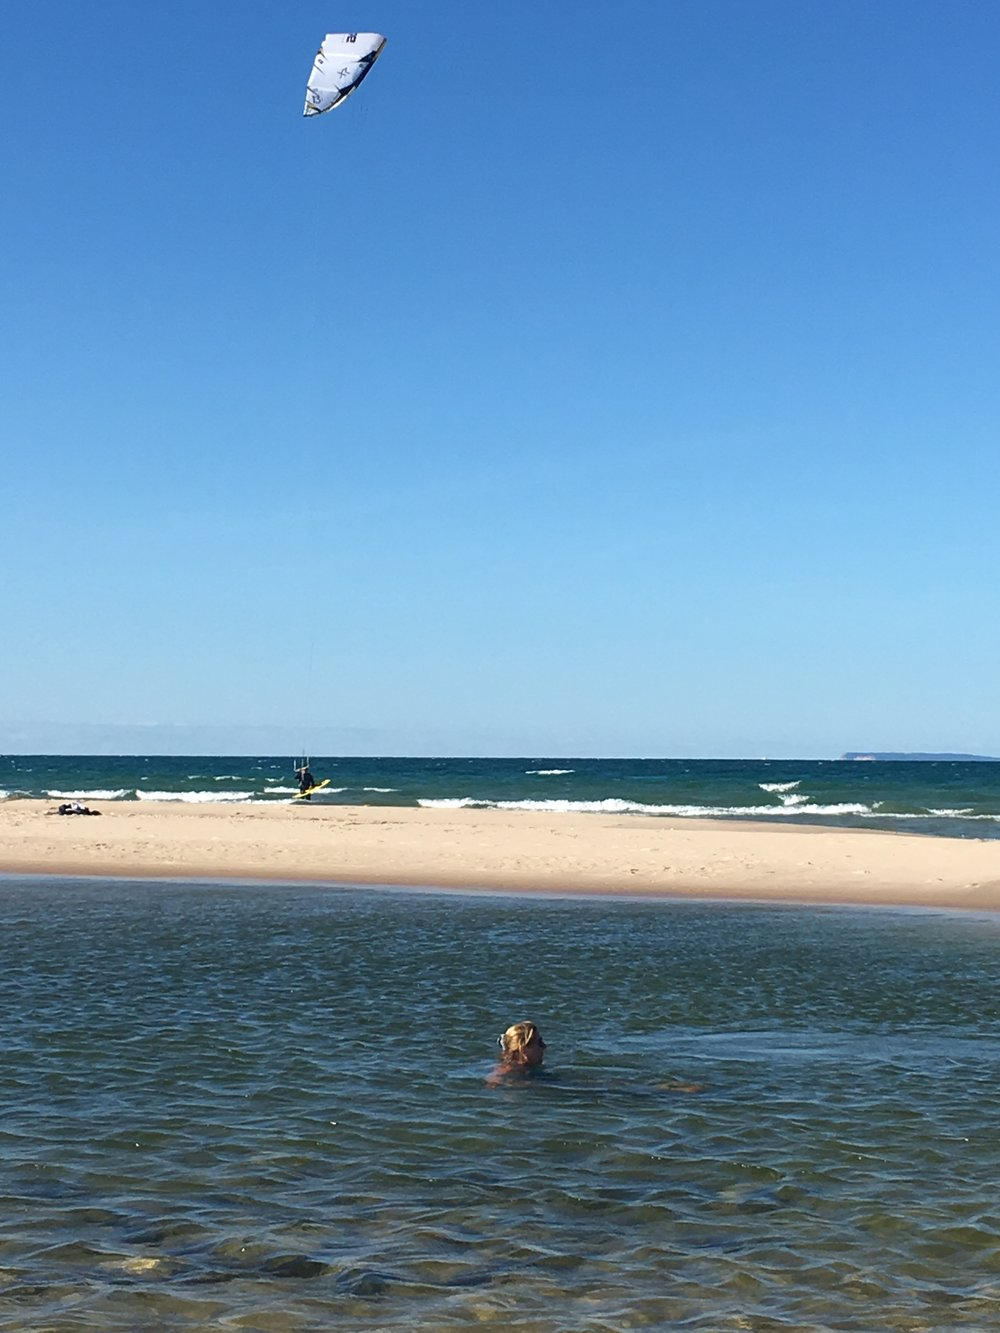 Jani in the mouth of the Platte river with a windsurfer on Lake Michigan.